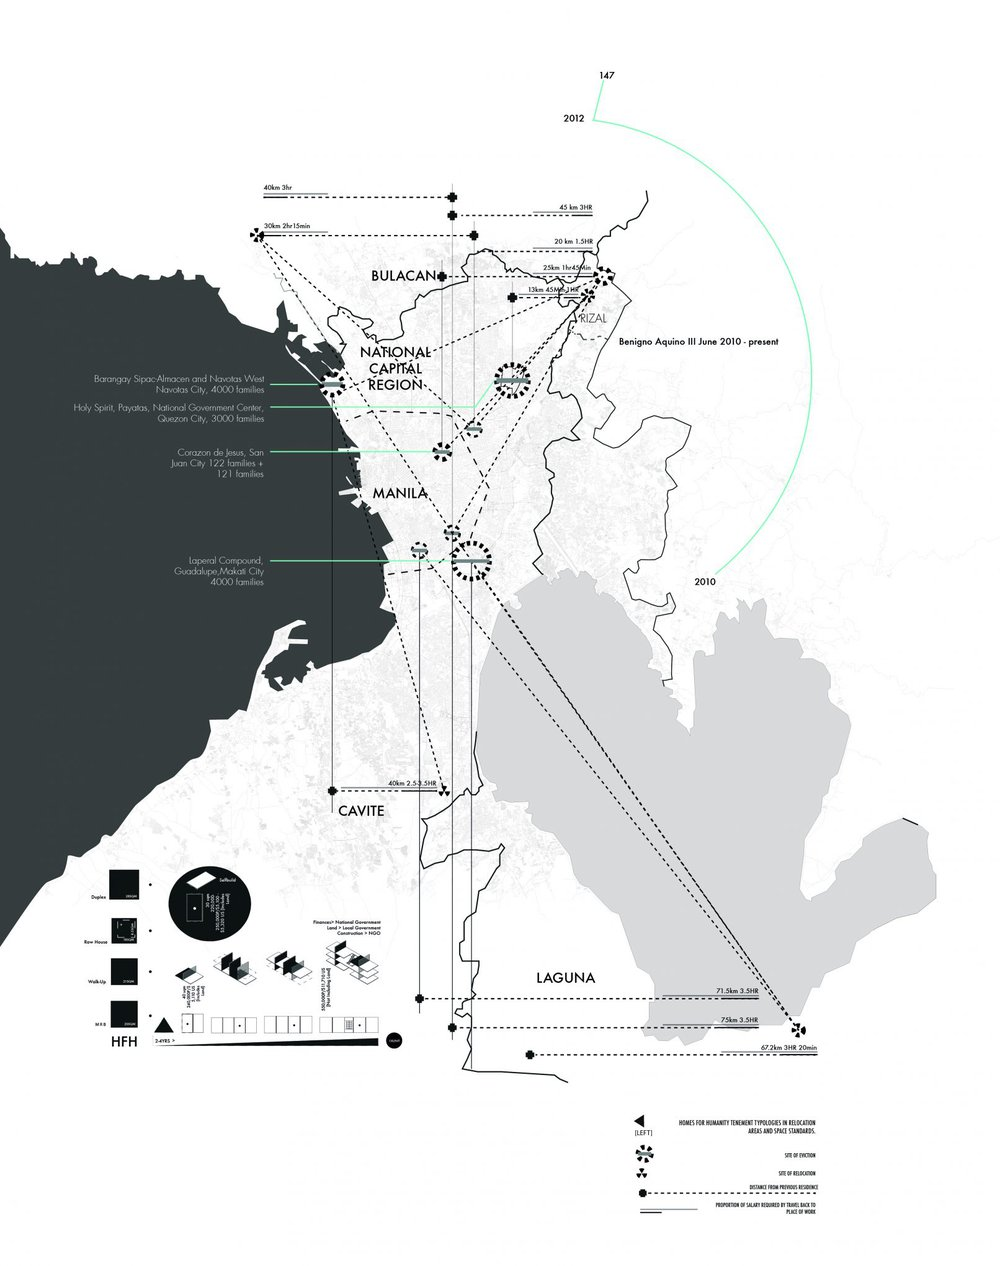 Mapping evictions and relocation distances in Manila